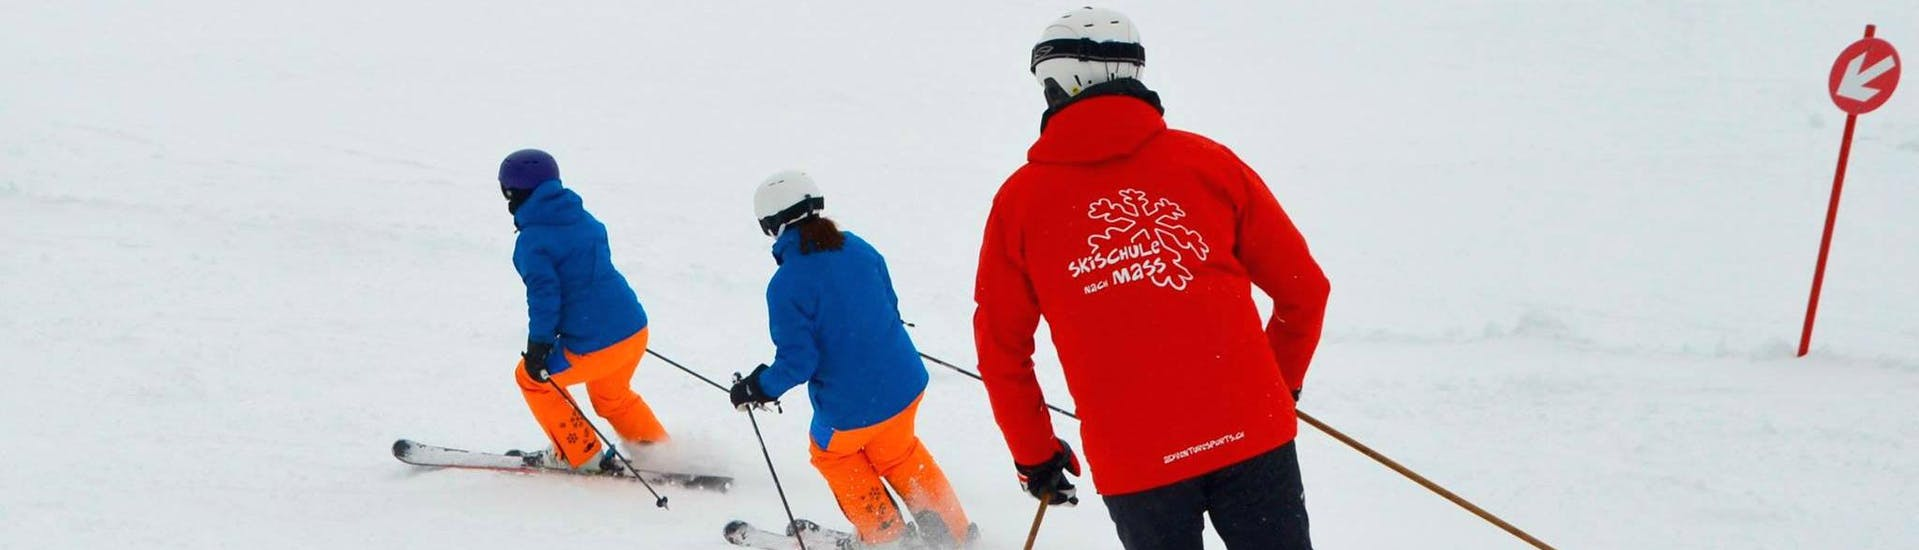 Ski Instructor Private for Adults - All Levels avec Skischule nach Mass - Hero image